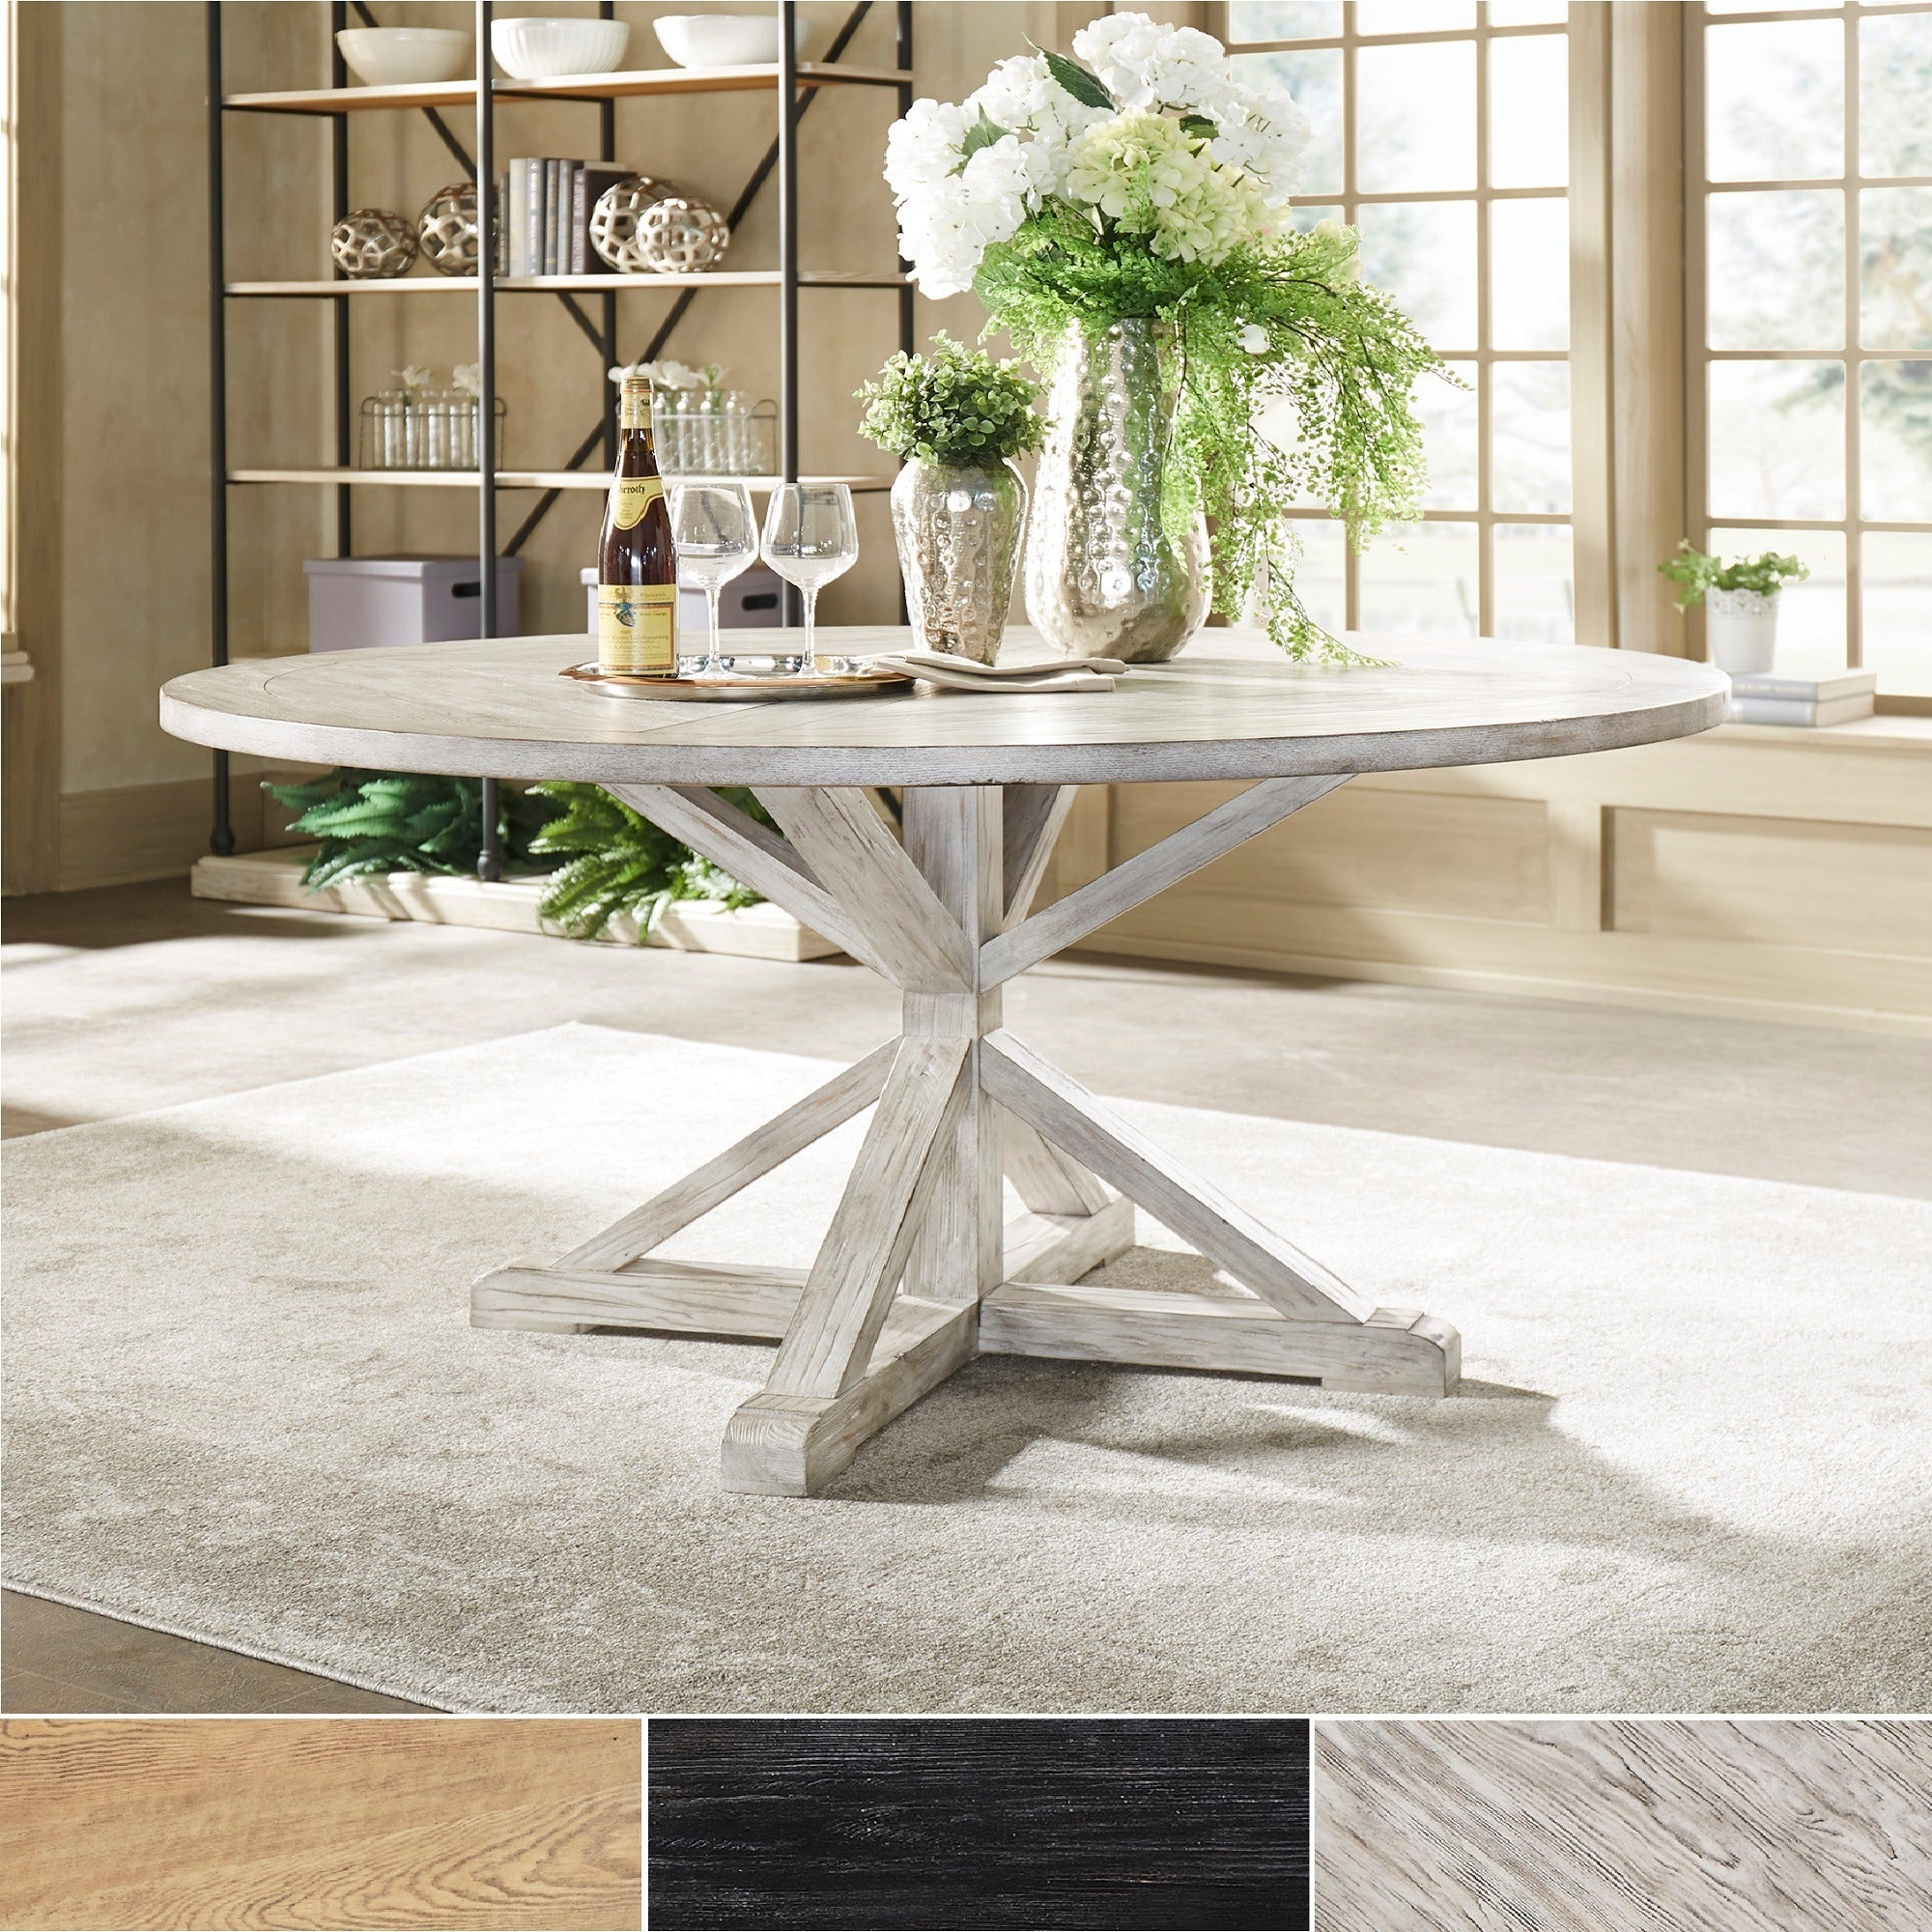 Benchwright Rustic X Base Round Pine Wood Dining Tableinspire Q Artisan For 2017 Rustic Mahogany Benchwright Pedestal Extending Dining Tables (View 14 of 25)